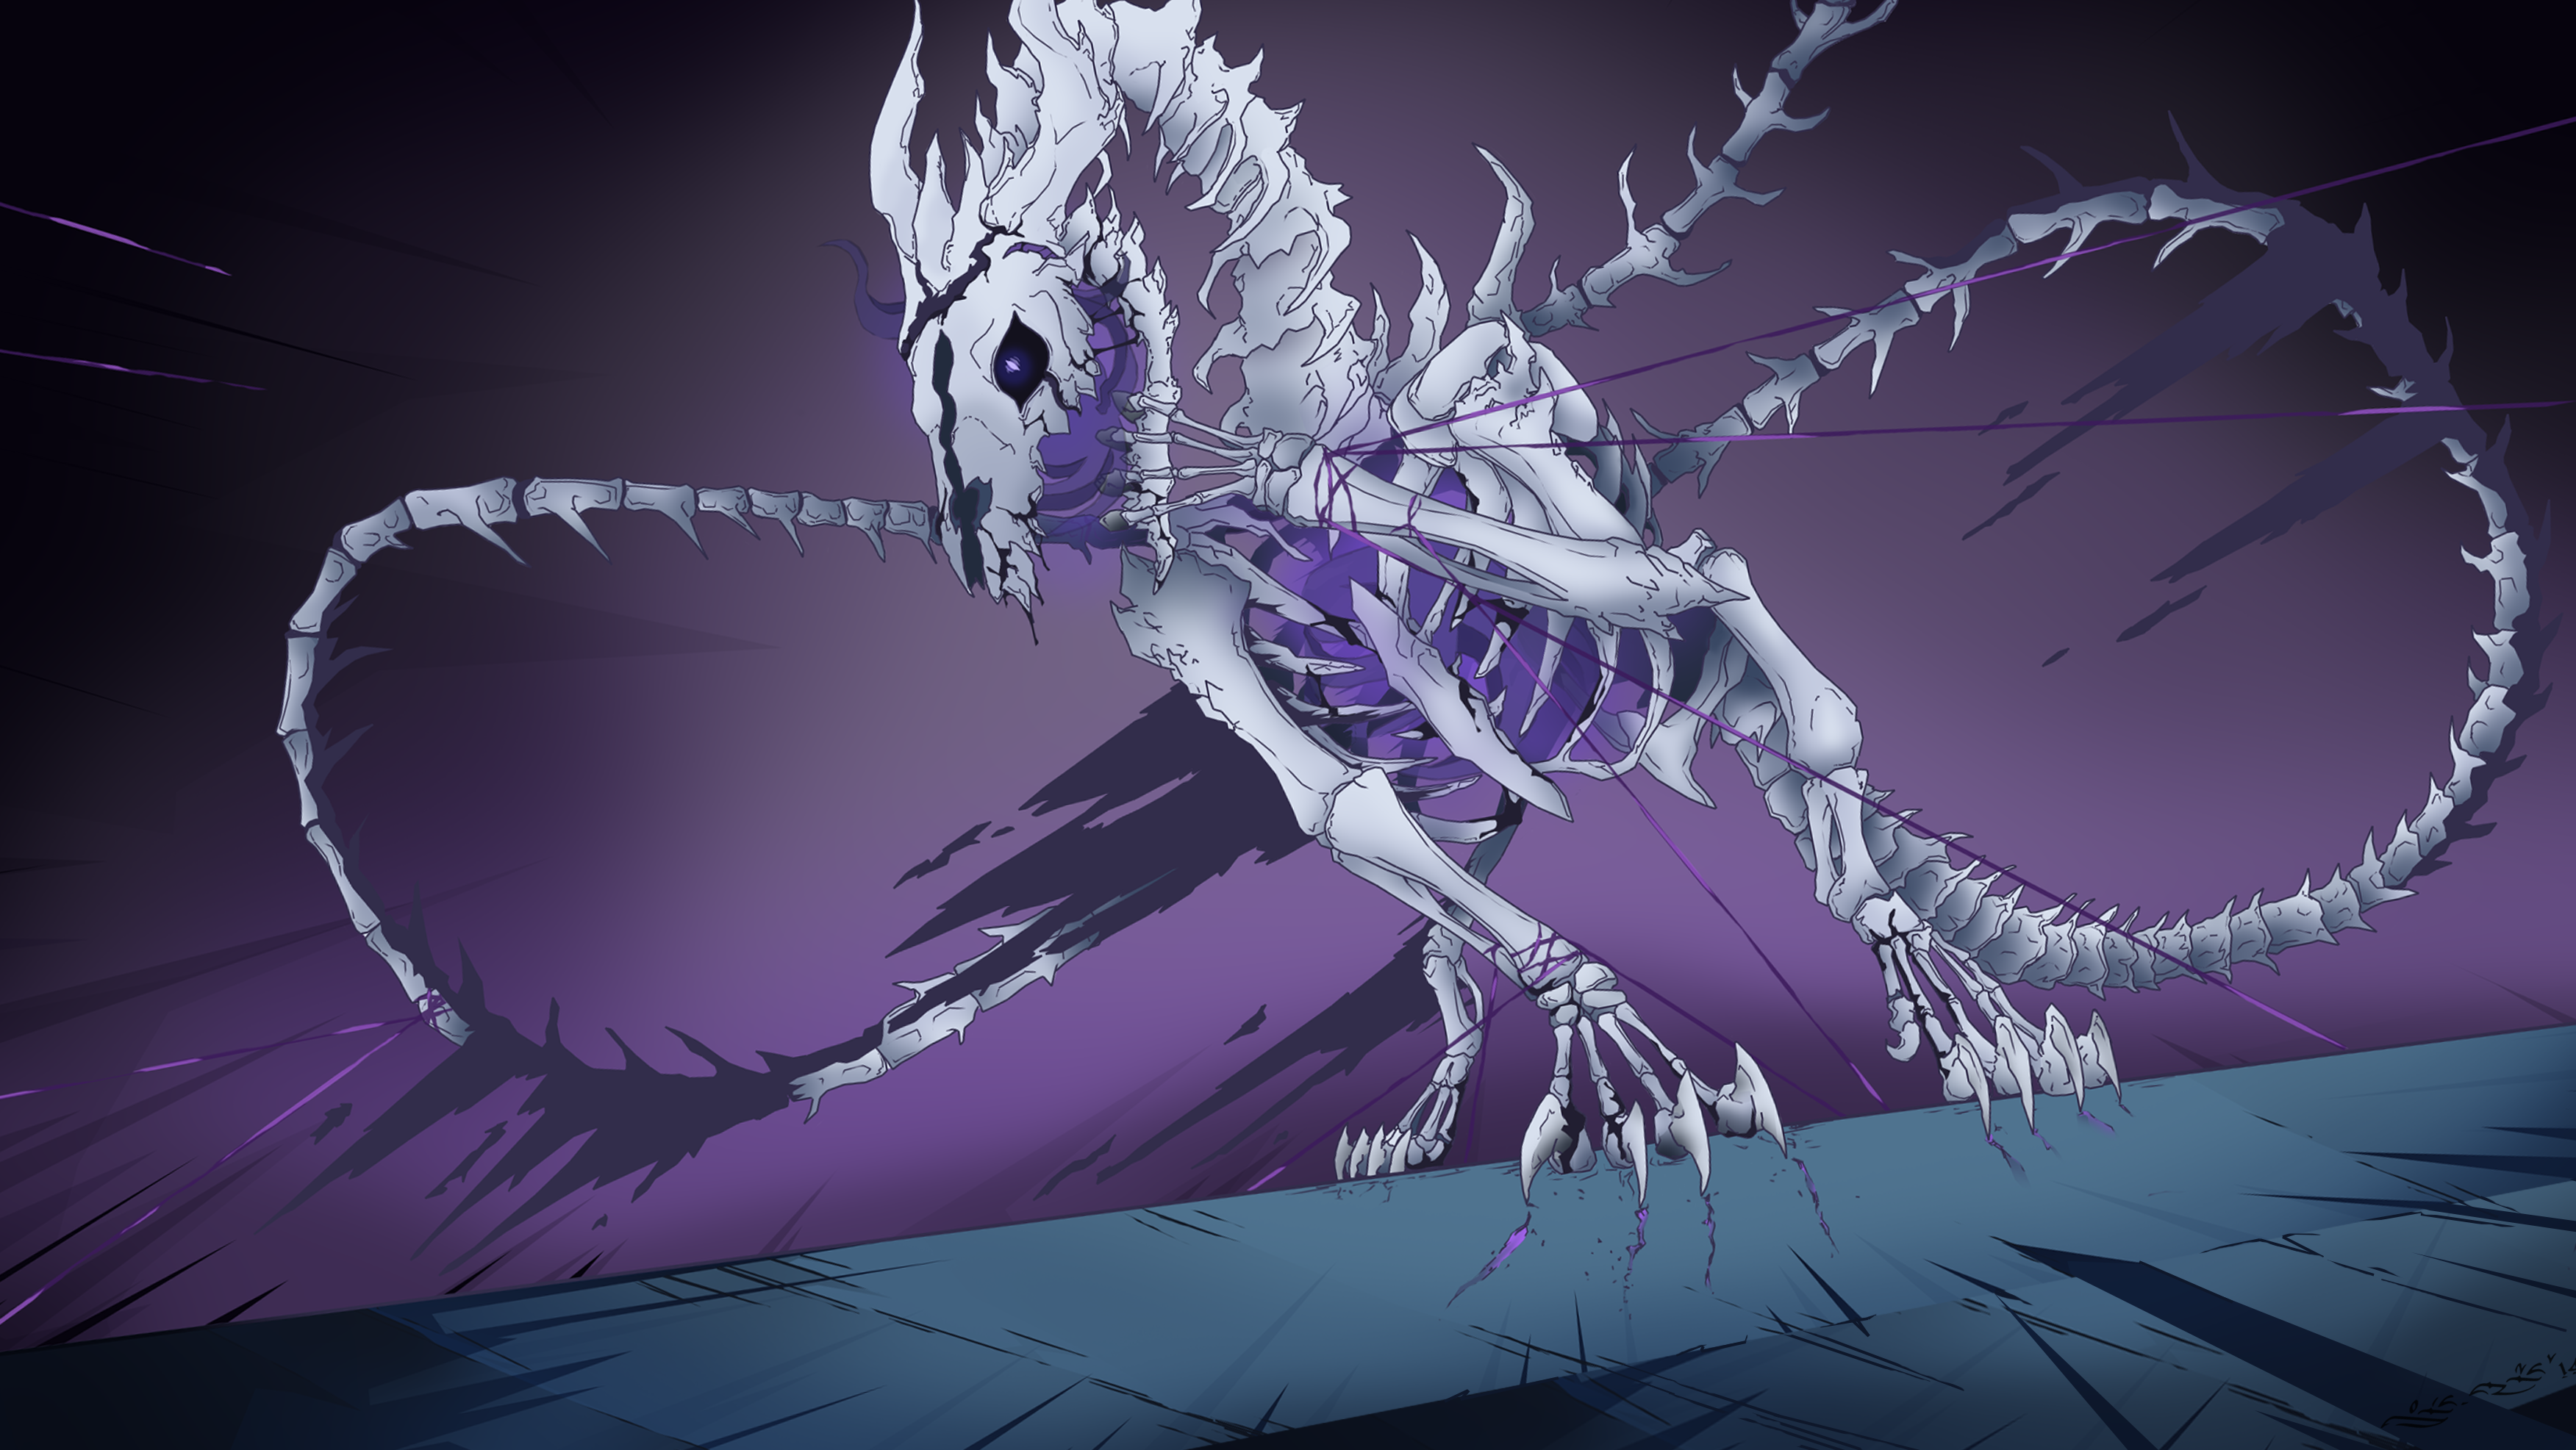 Undertale Gaster Blaster From The Void By The Solar Flare Dboivk8 Png 3504 1973 Undertale Gaster Blaster Undertale Gaster Undertale